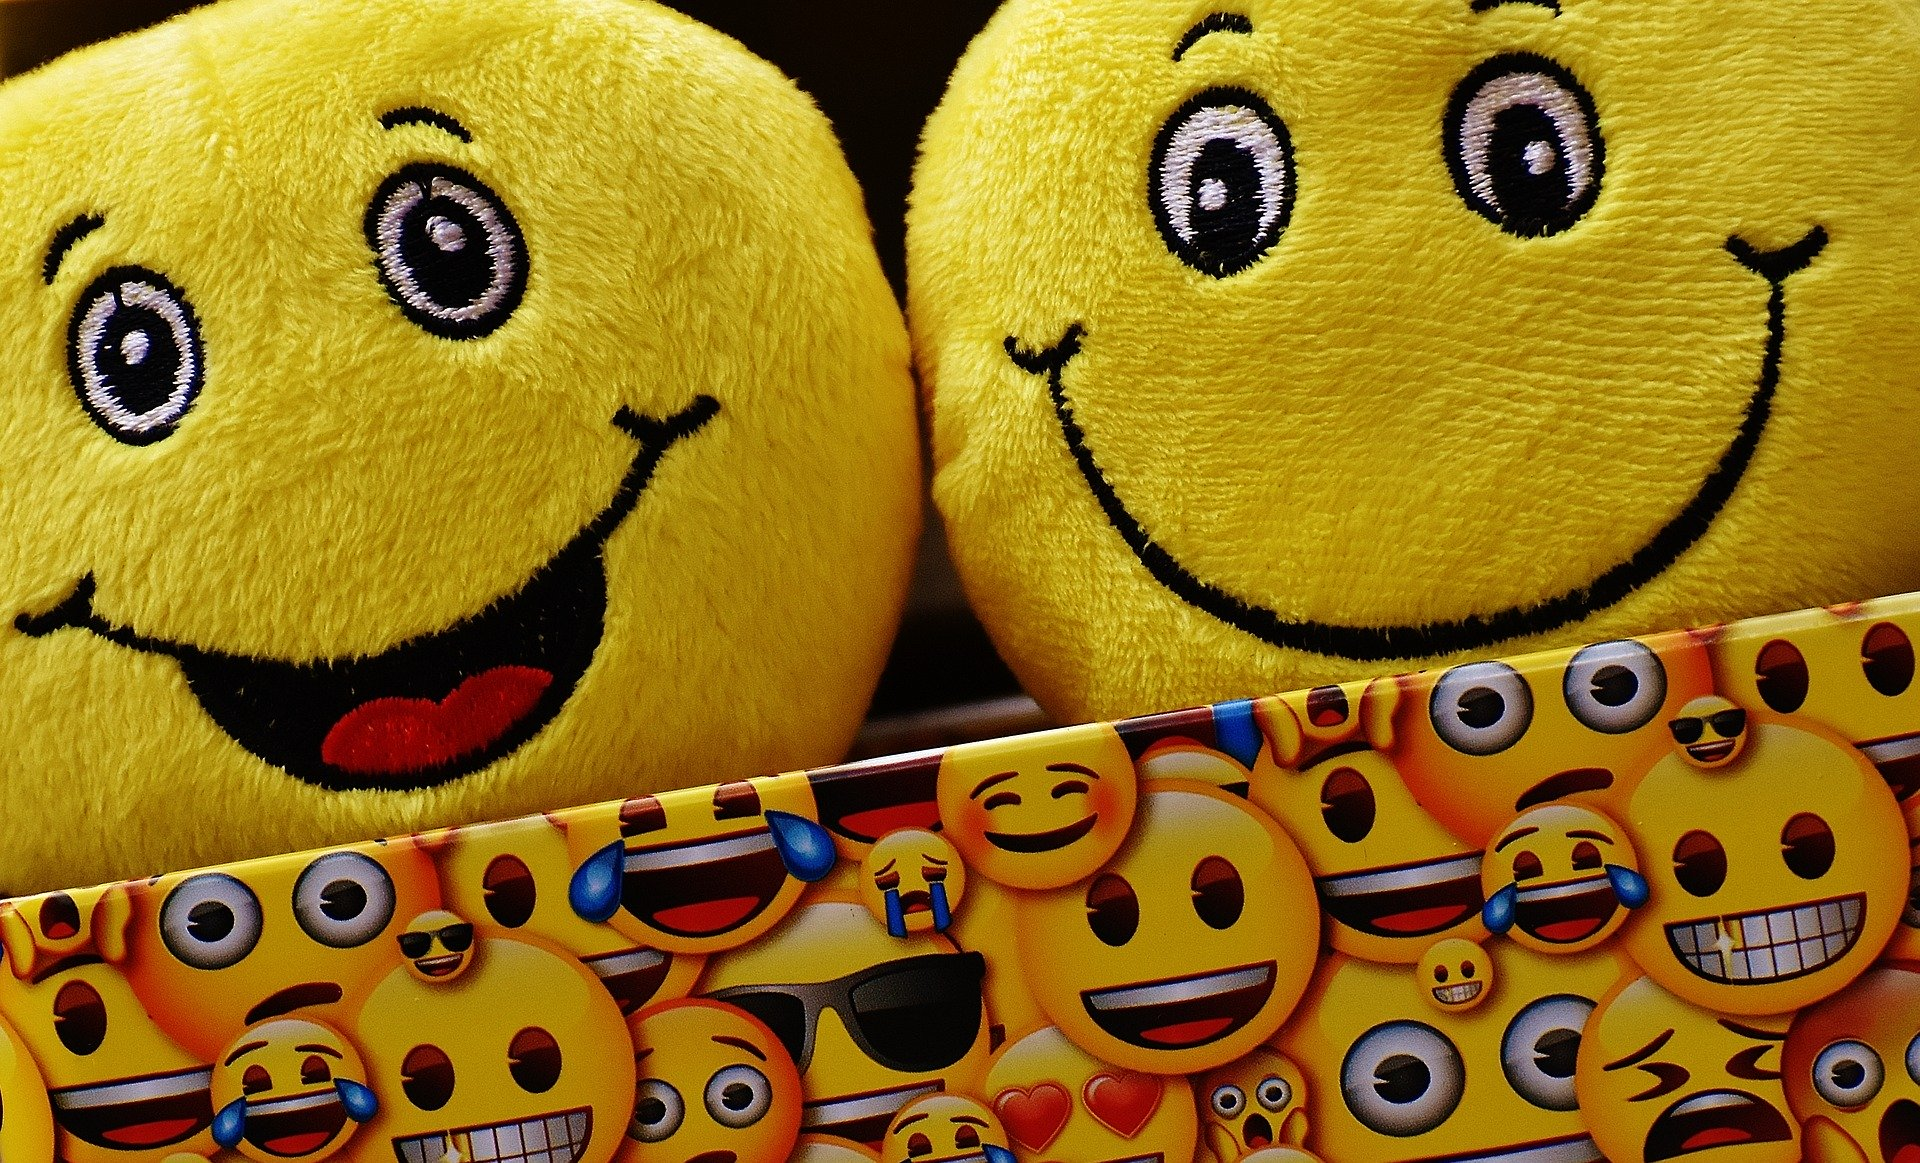 Emoji- the New Era Communication Tool. Follow the Blog to Know More